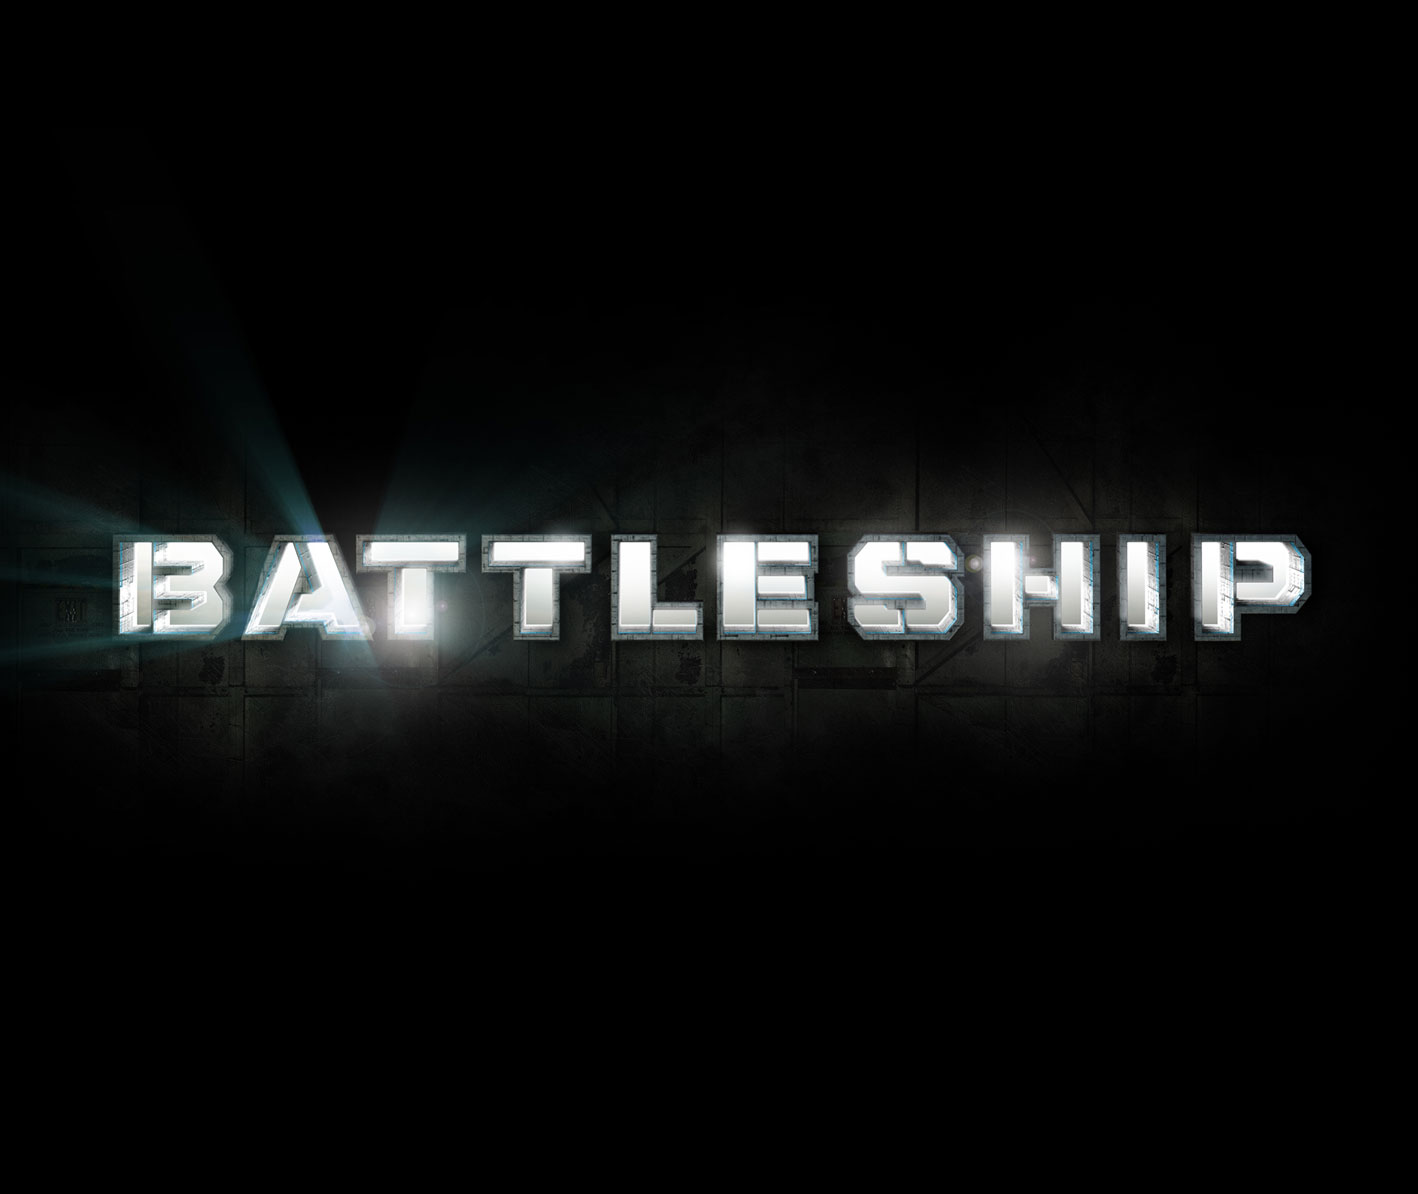 Battleship Logo photo - 1